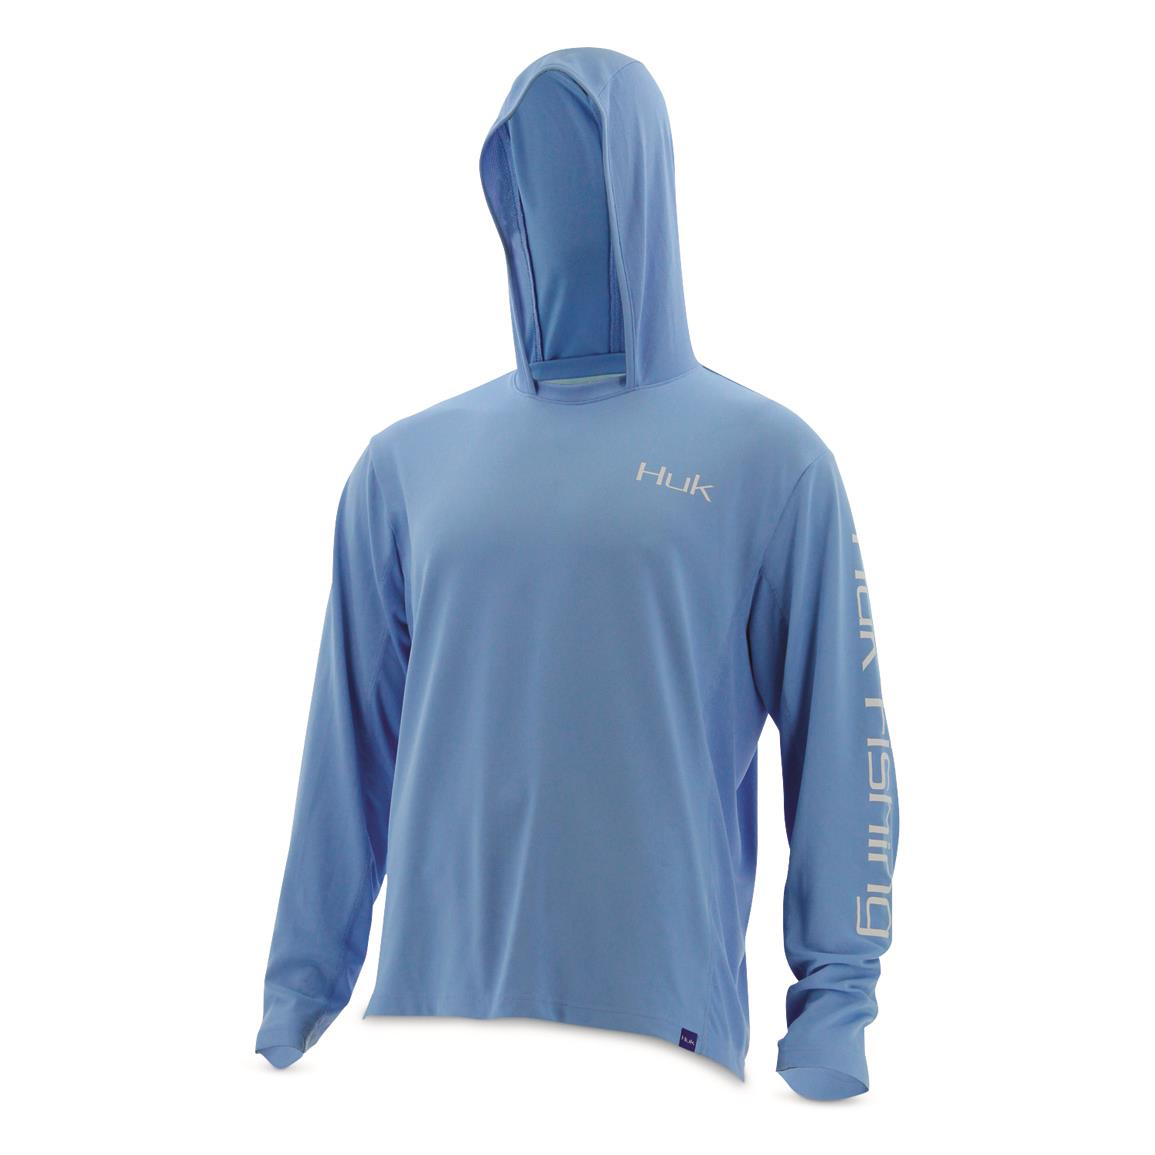 Huk Men's ICON Hoodie, Carolina Blue